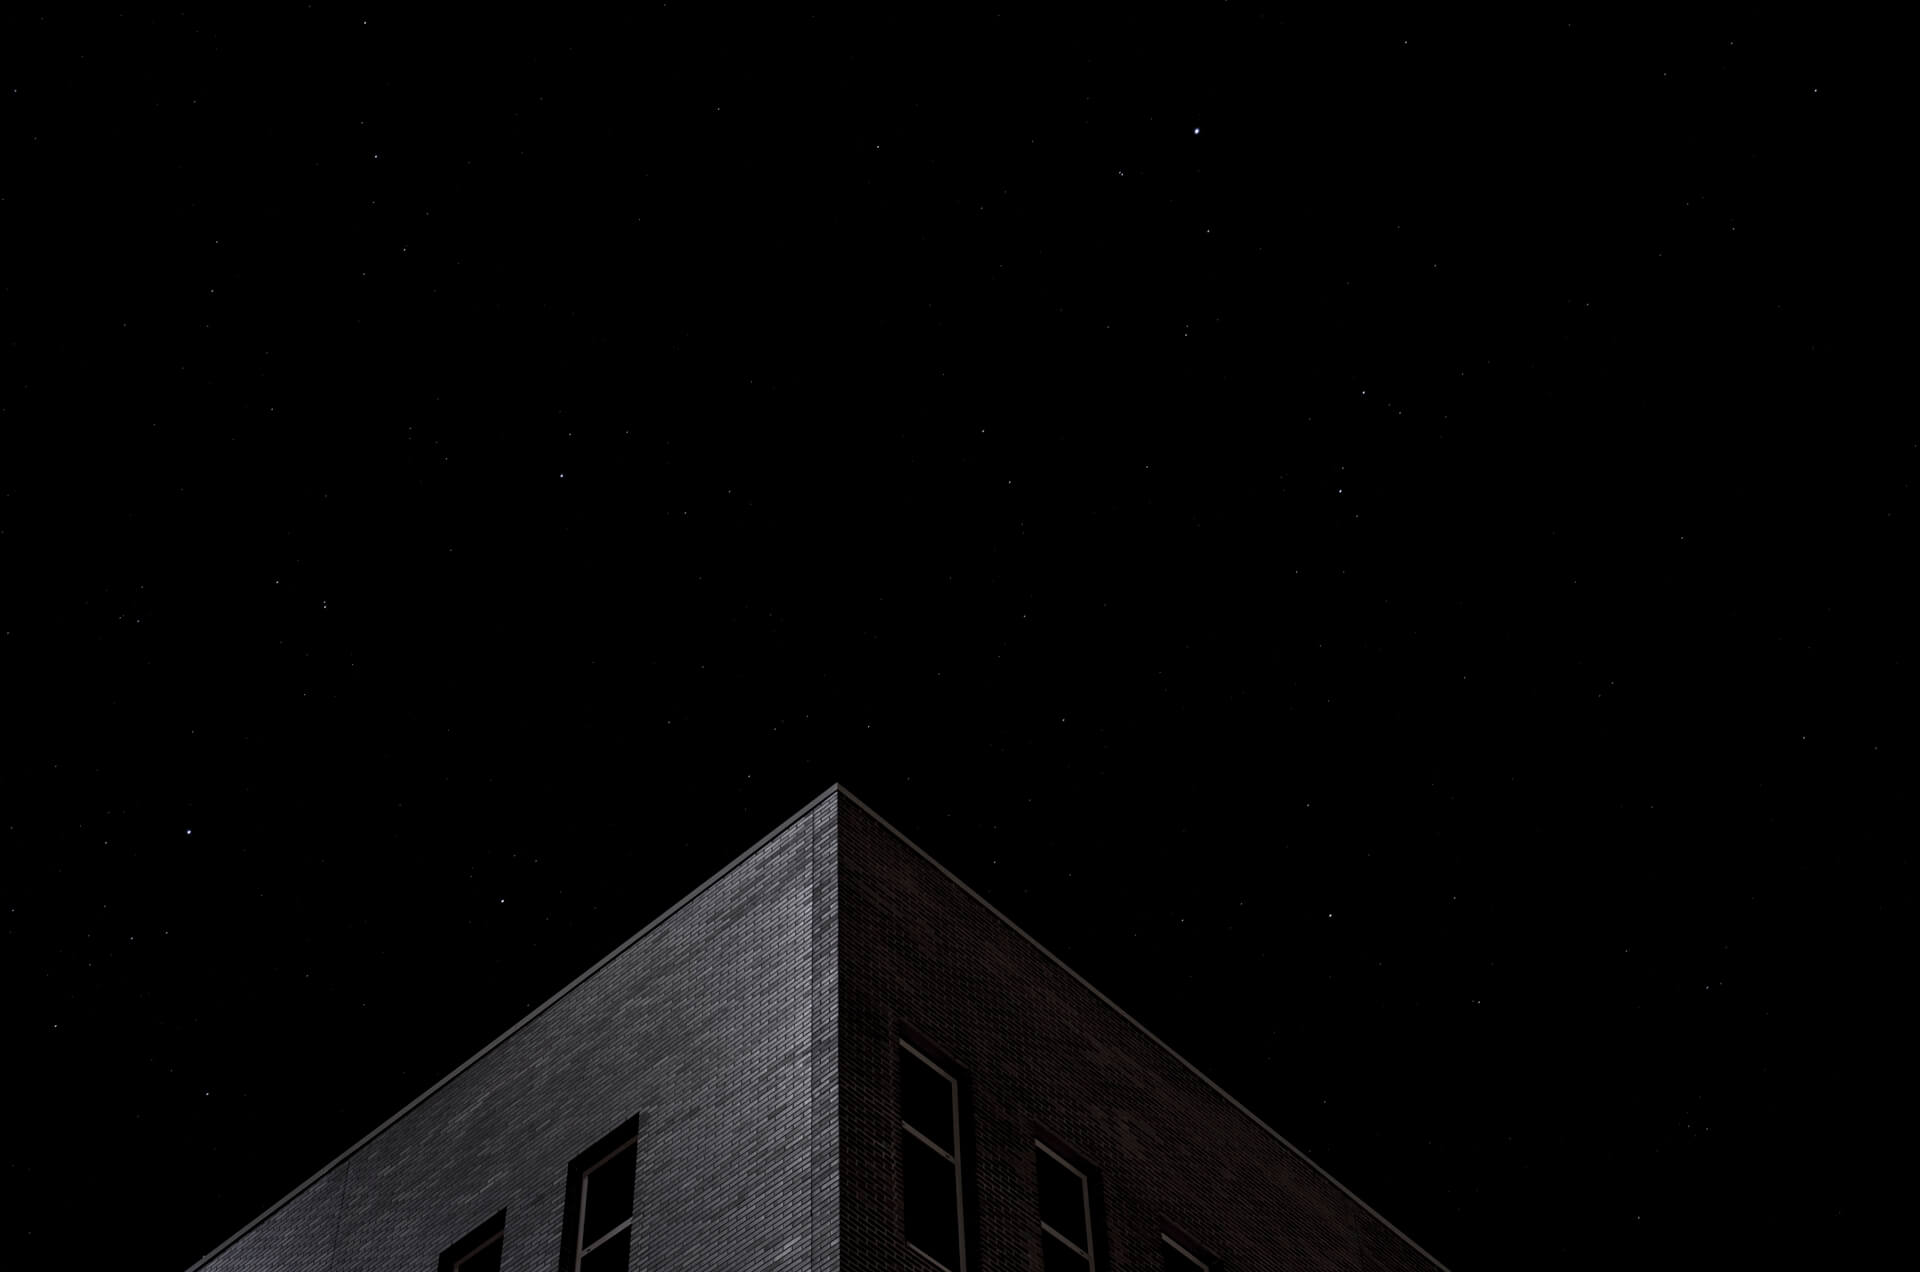 night geometries